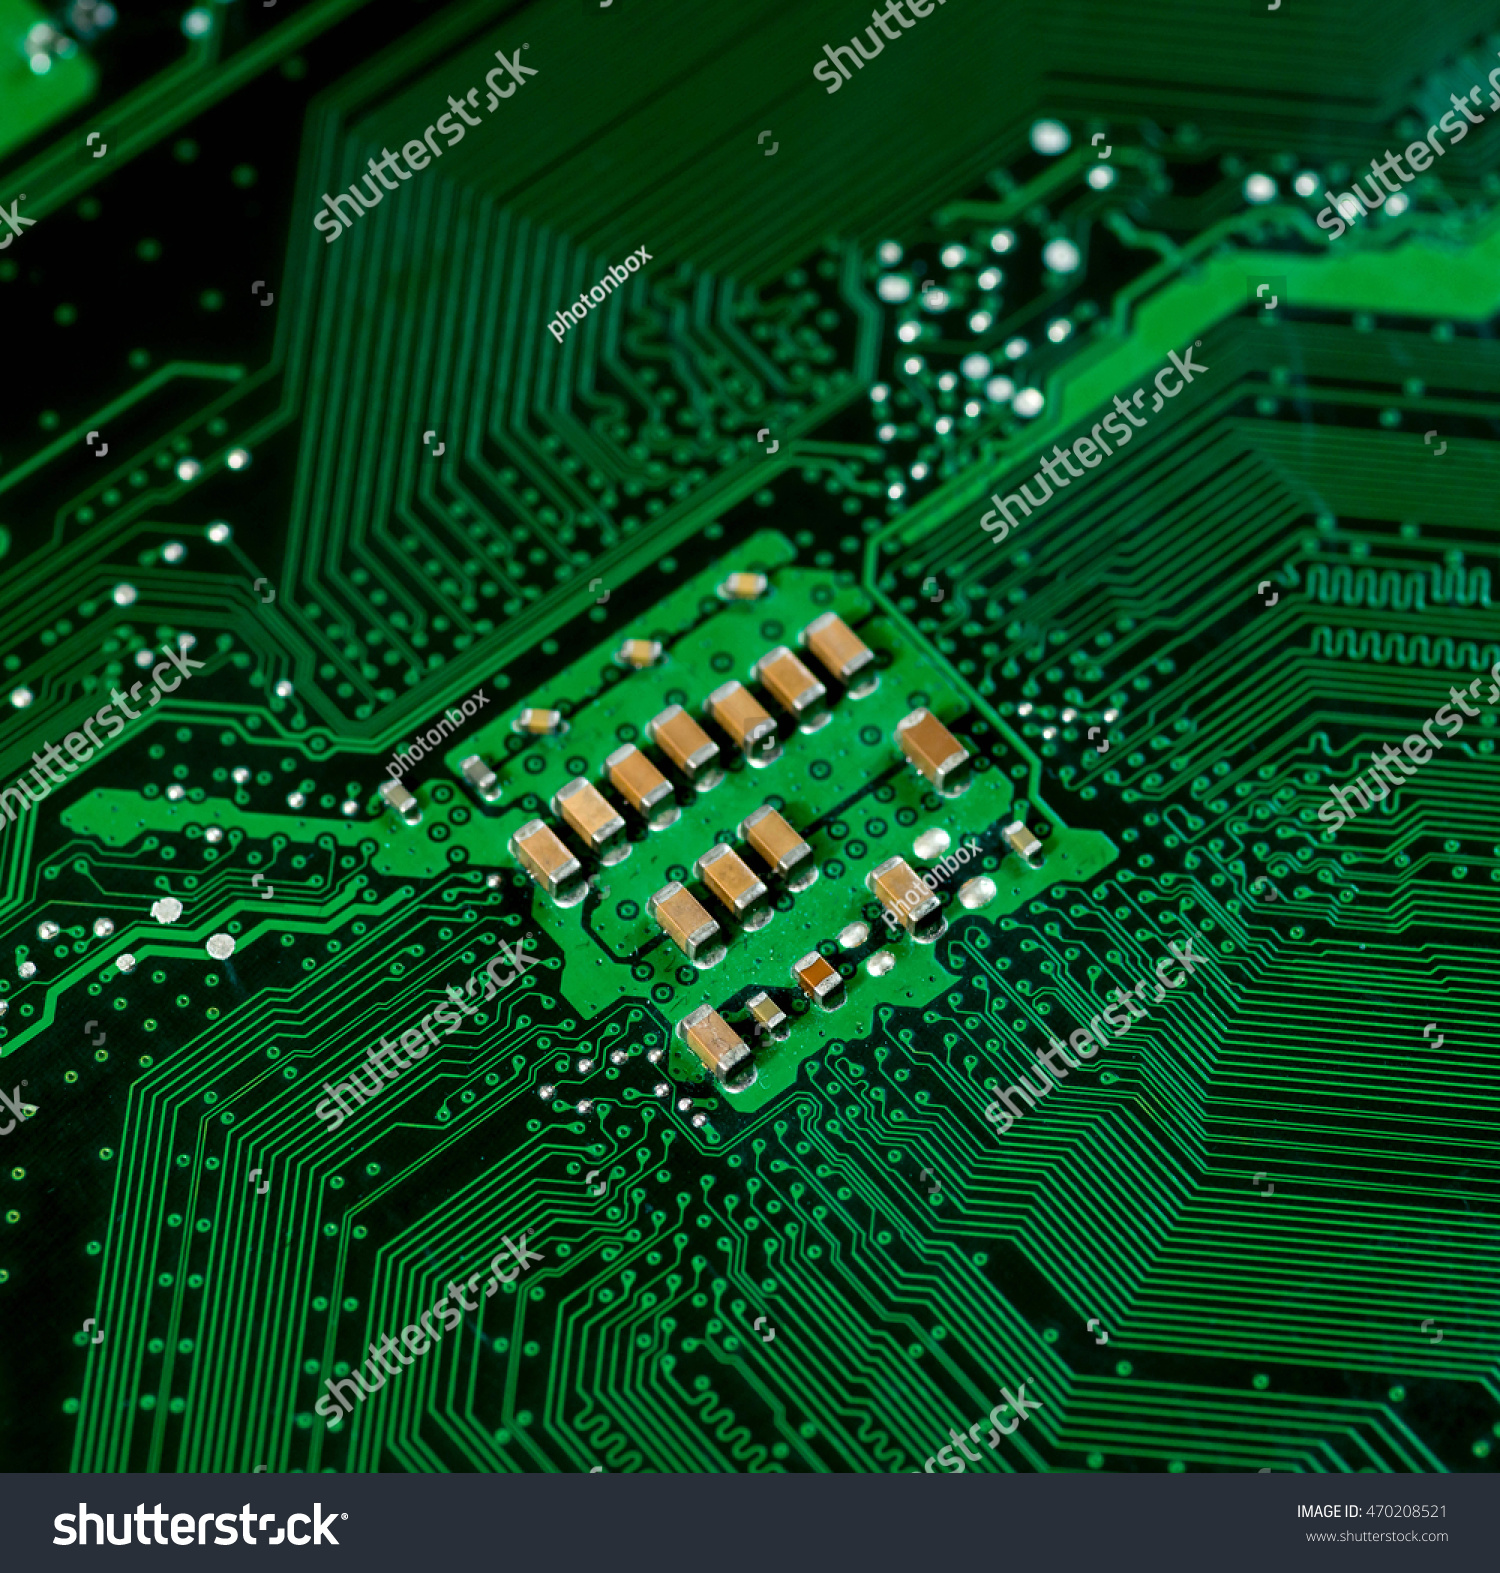 Green Pcb Board Integrated Circuit Close Stock Photo Edit Now Photos Circuits Computers Components Technology Image Up Background Highly Detailed